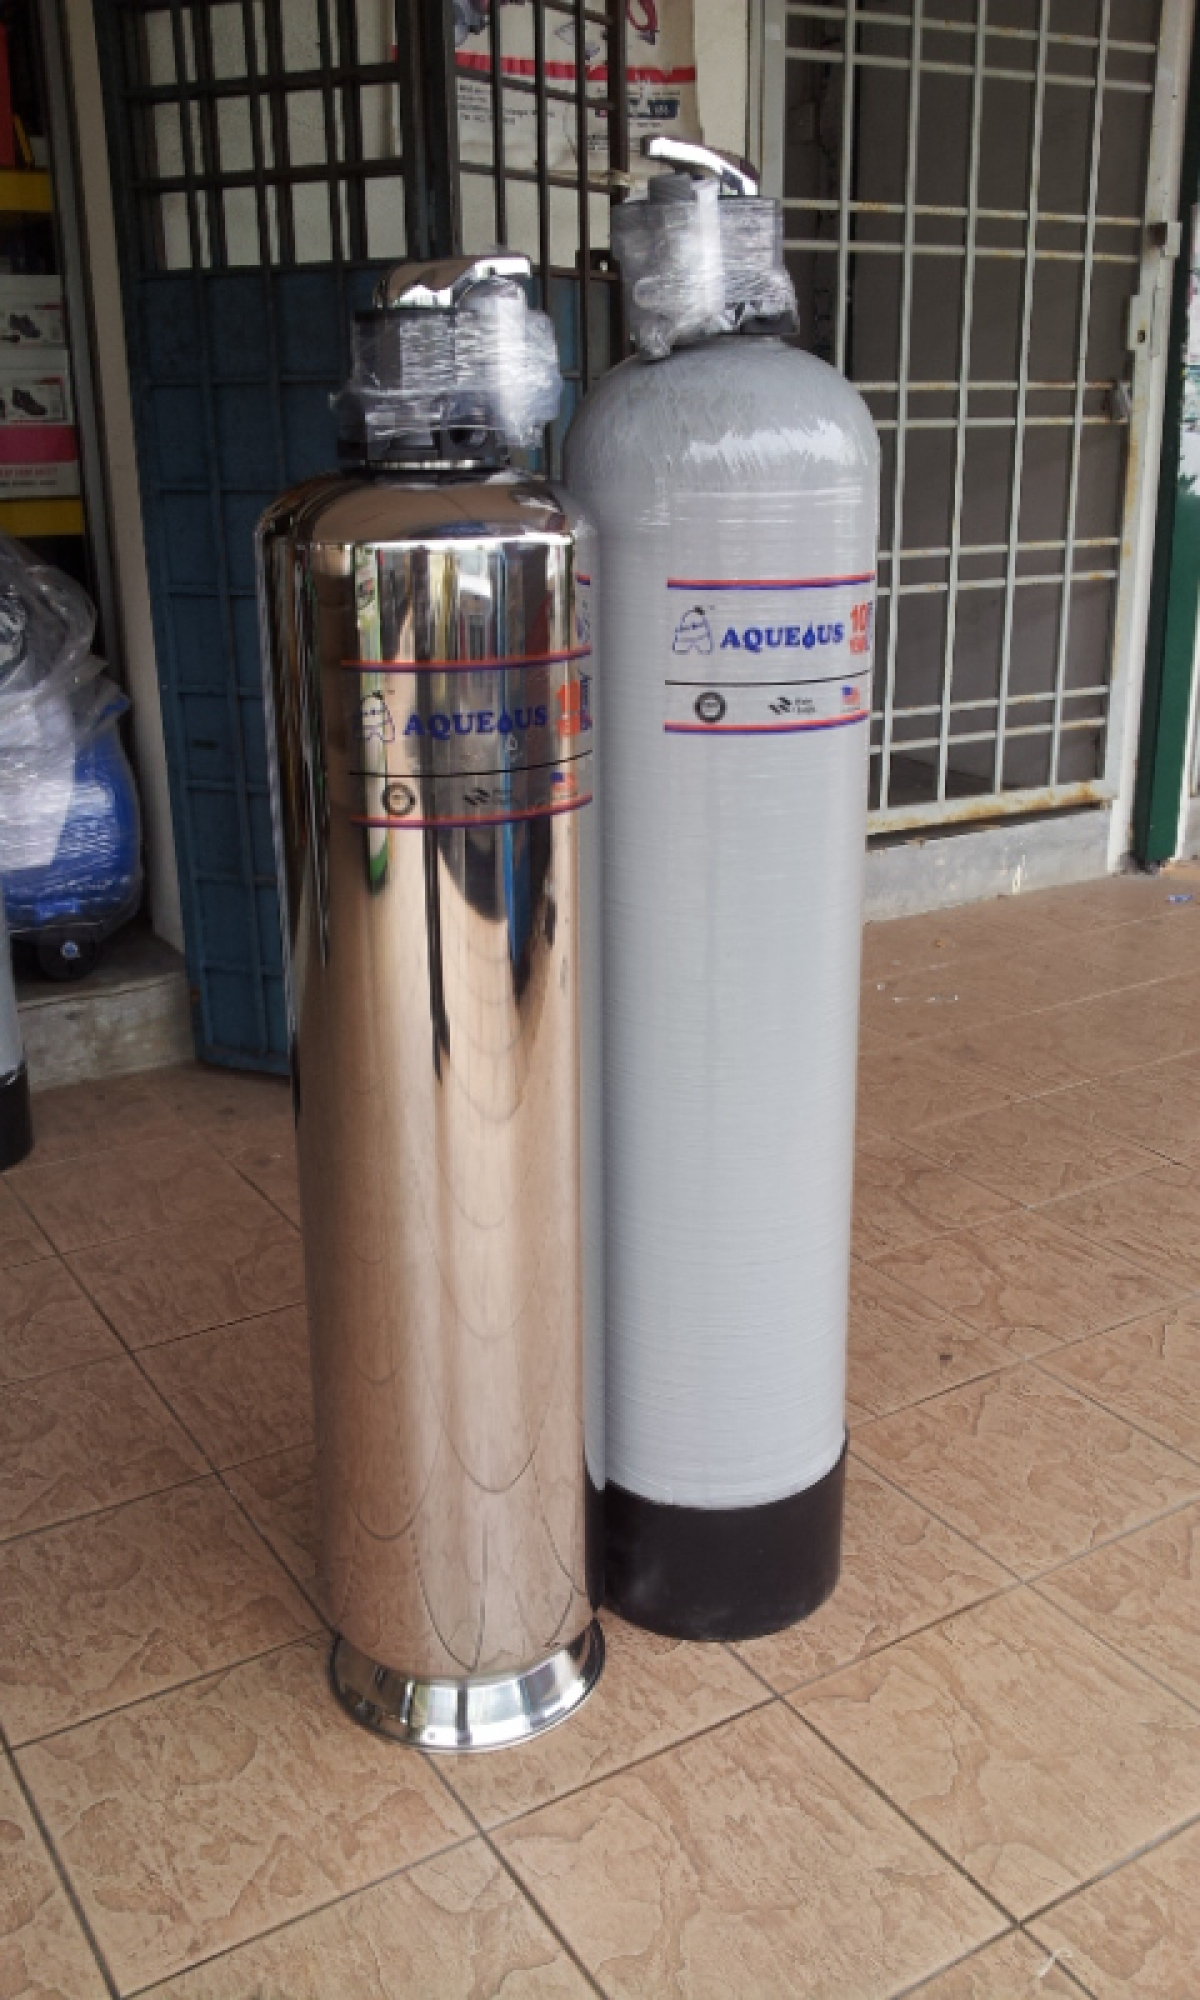 Aqueous 10 Quot X 44 Quot Frb Outdoor Water Filtration System My